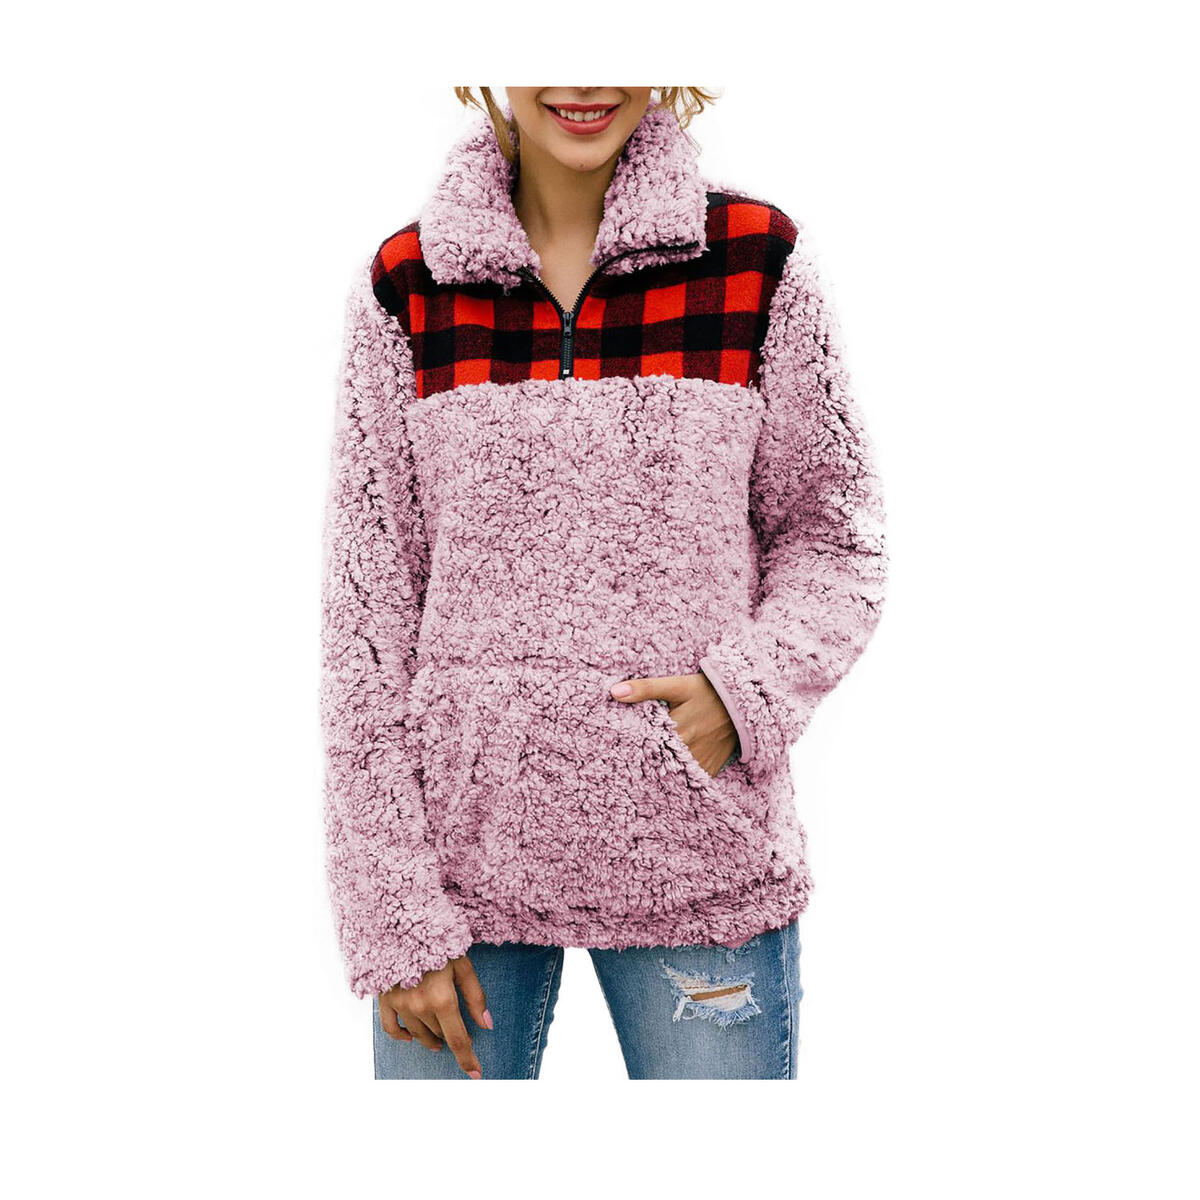 Women's Warm Fleece Color-Block Plaid Print Fluffy Sherpa Jacket Half Zipper Pullover Sweater with Pockets All